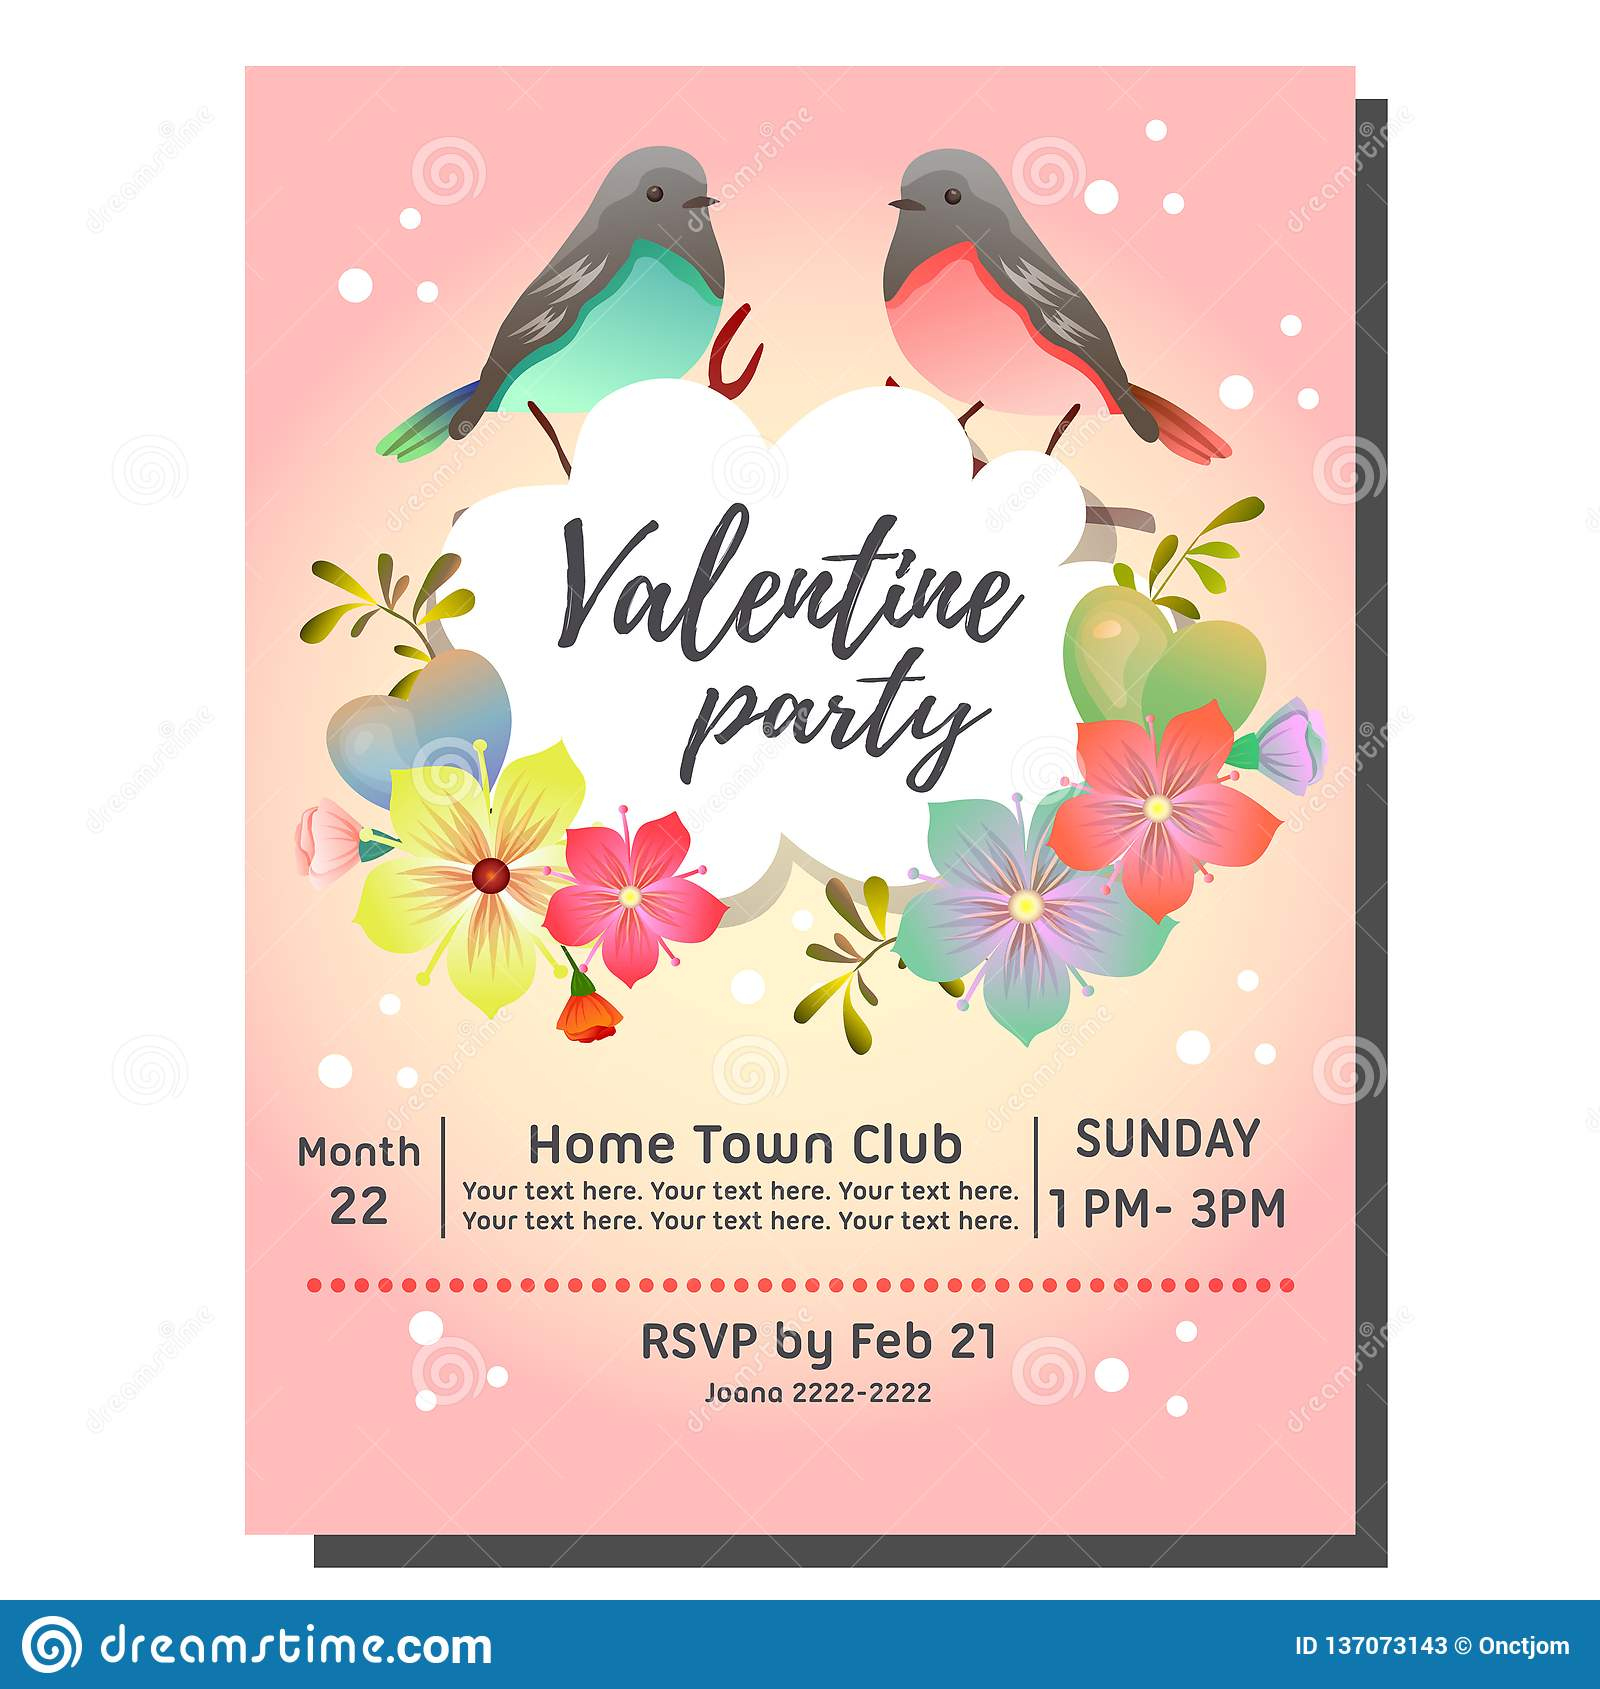 Valentine Party Invitation Card With Bird Couple Stock